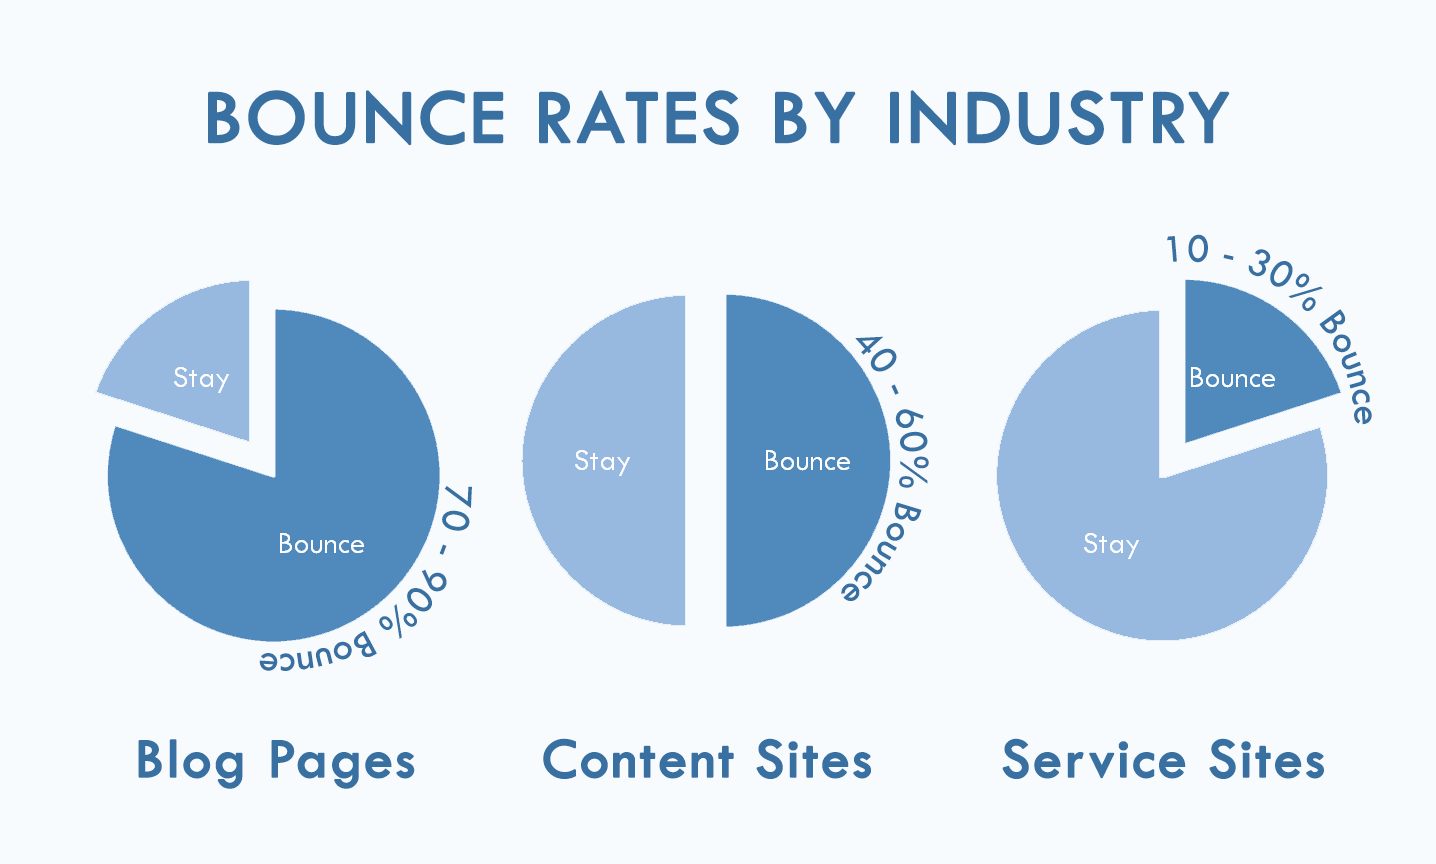 Types Of Websites Based On Their Google Ytics Bounce Rate If The Purpose Page Is Not To Lead User Through Rest Website